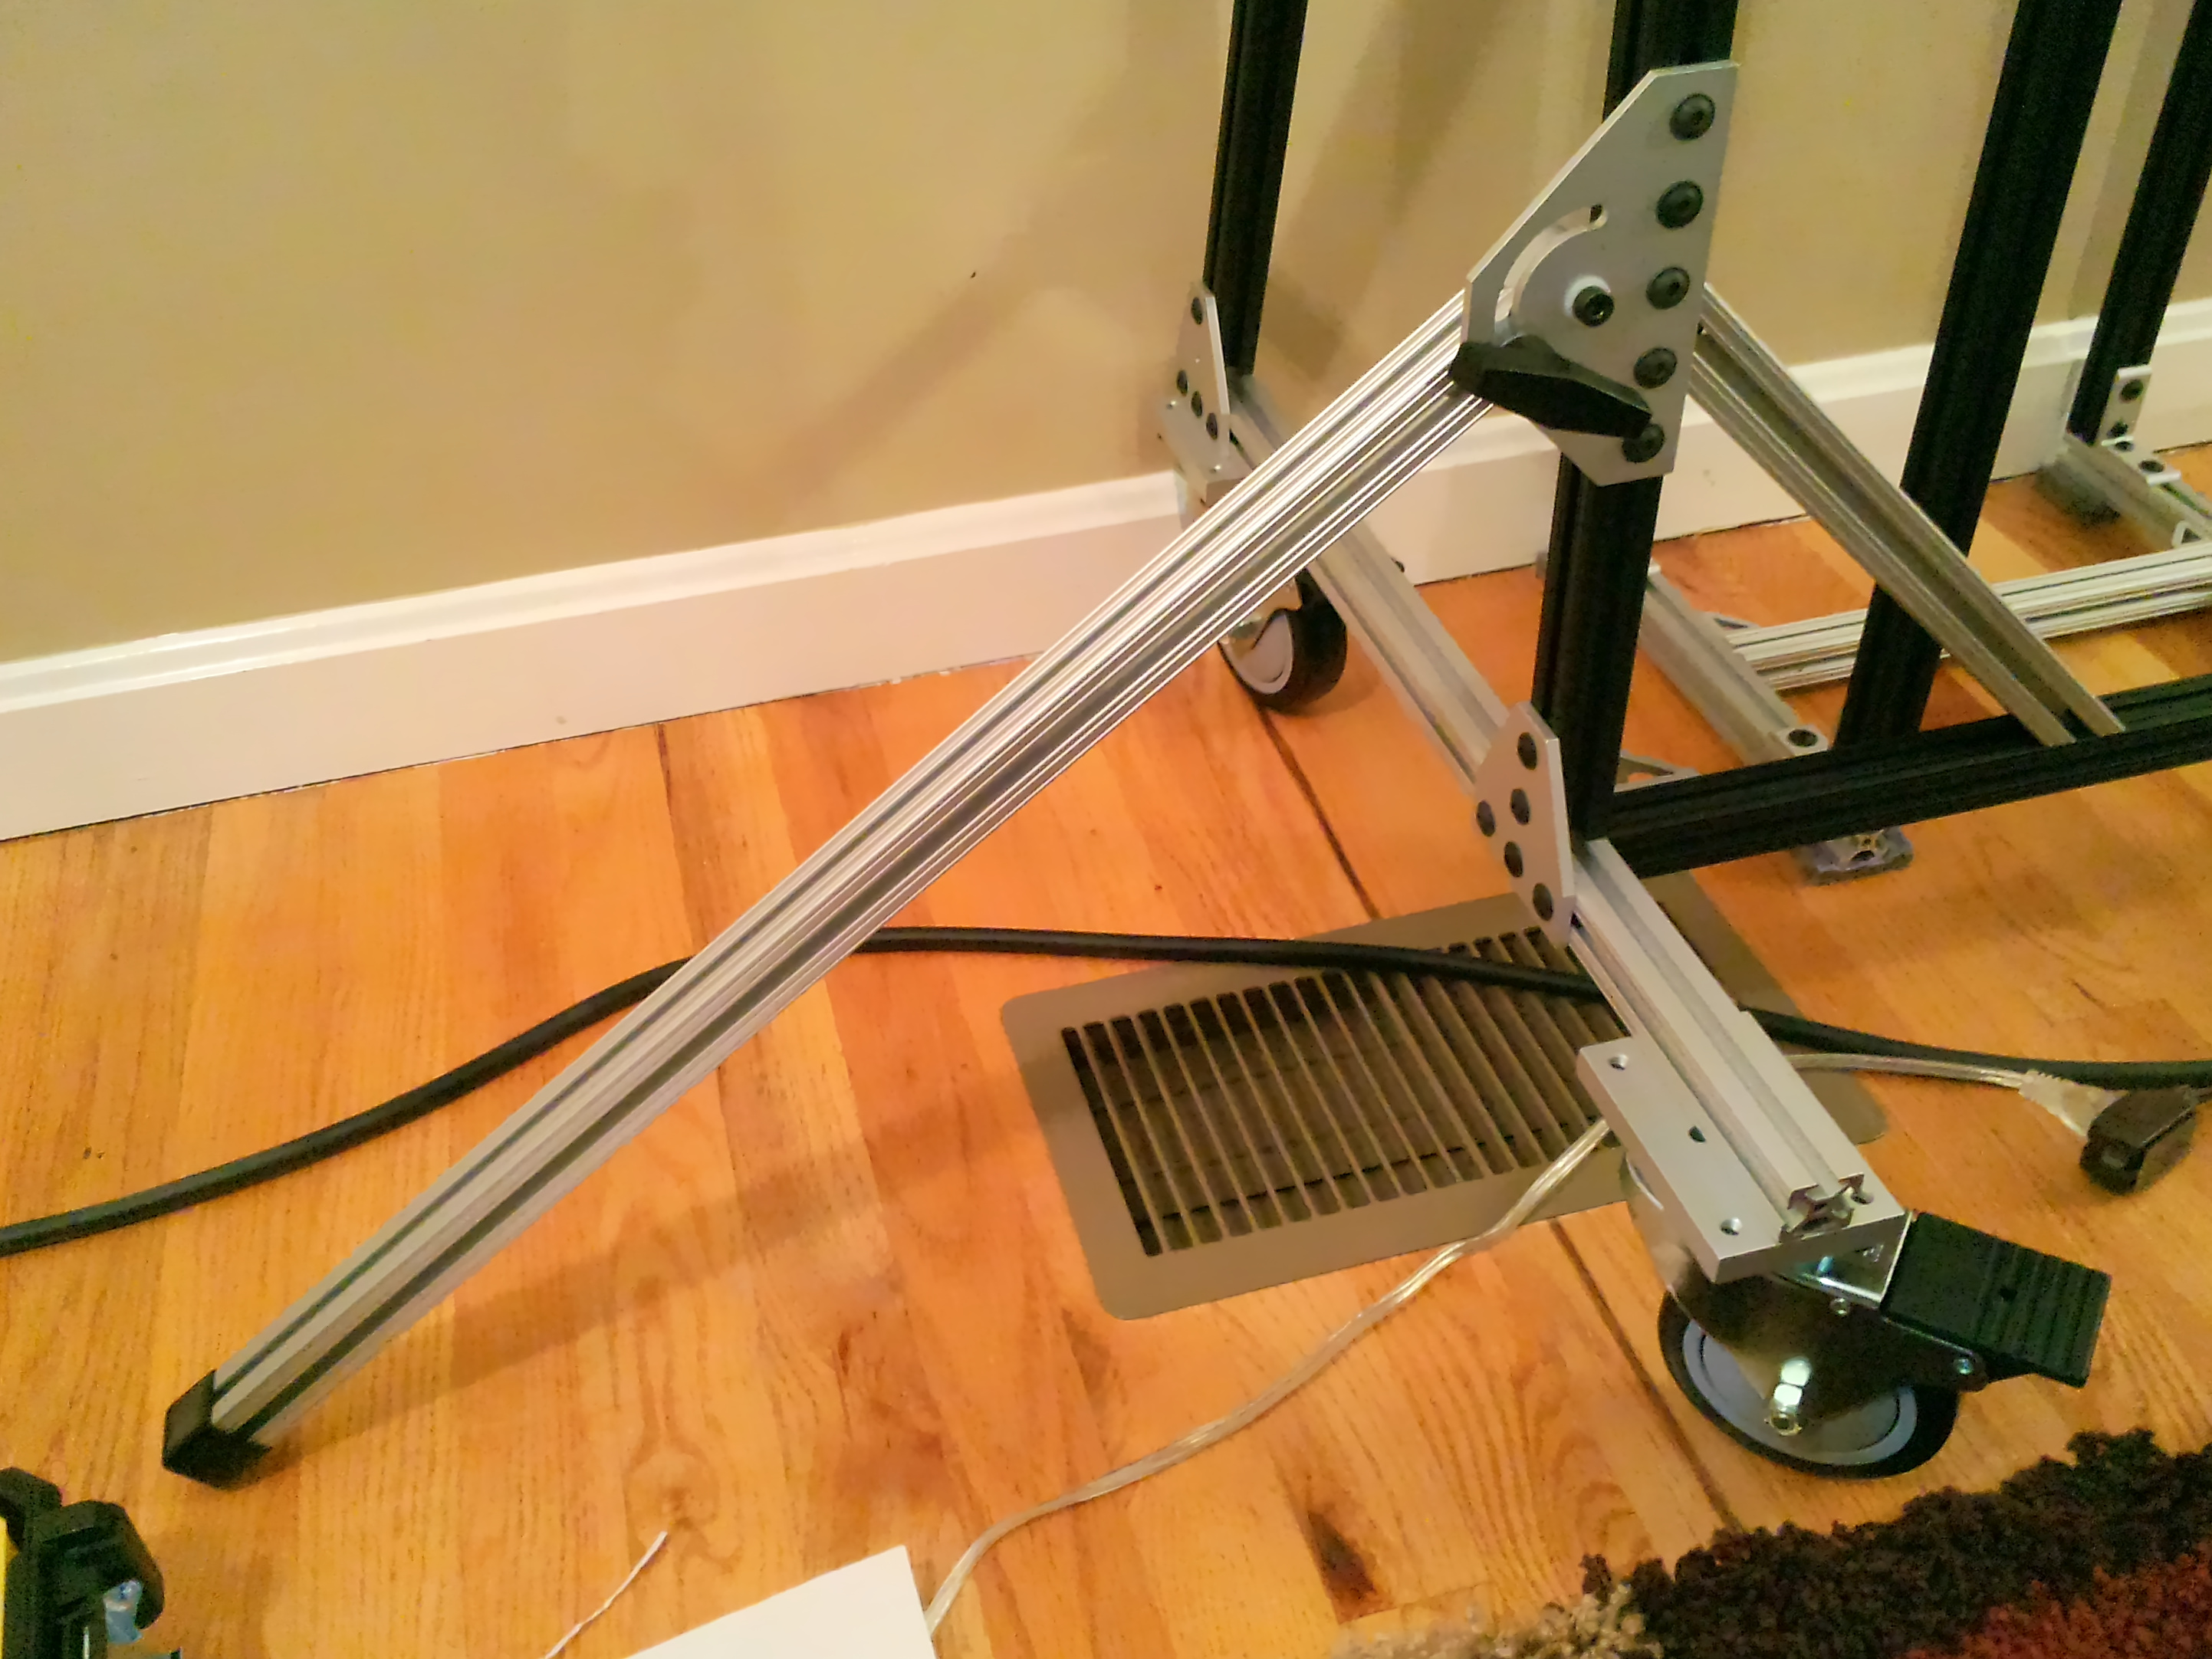 20131204-screen-stand-outrigger.jpg